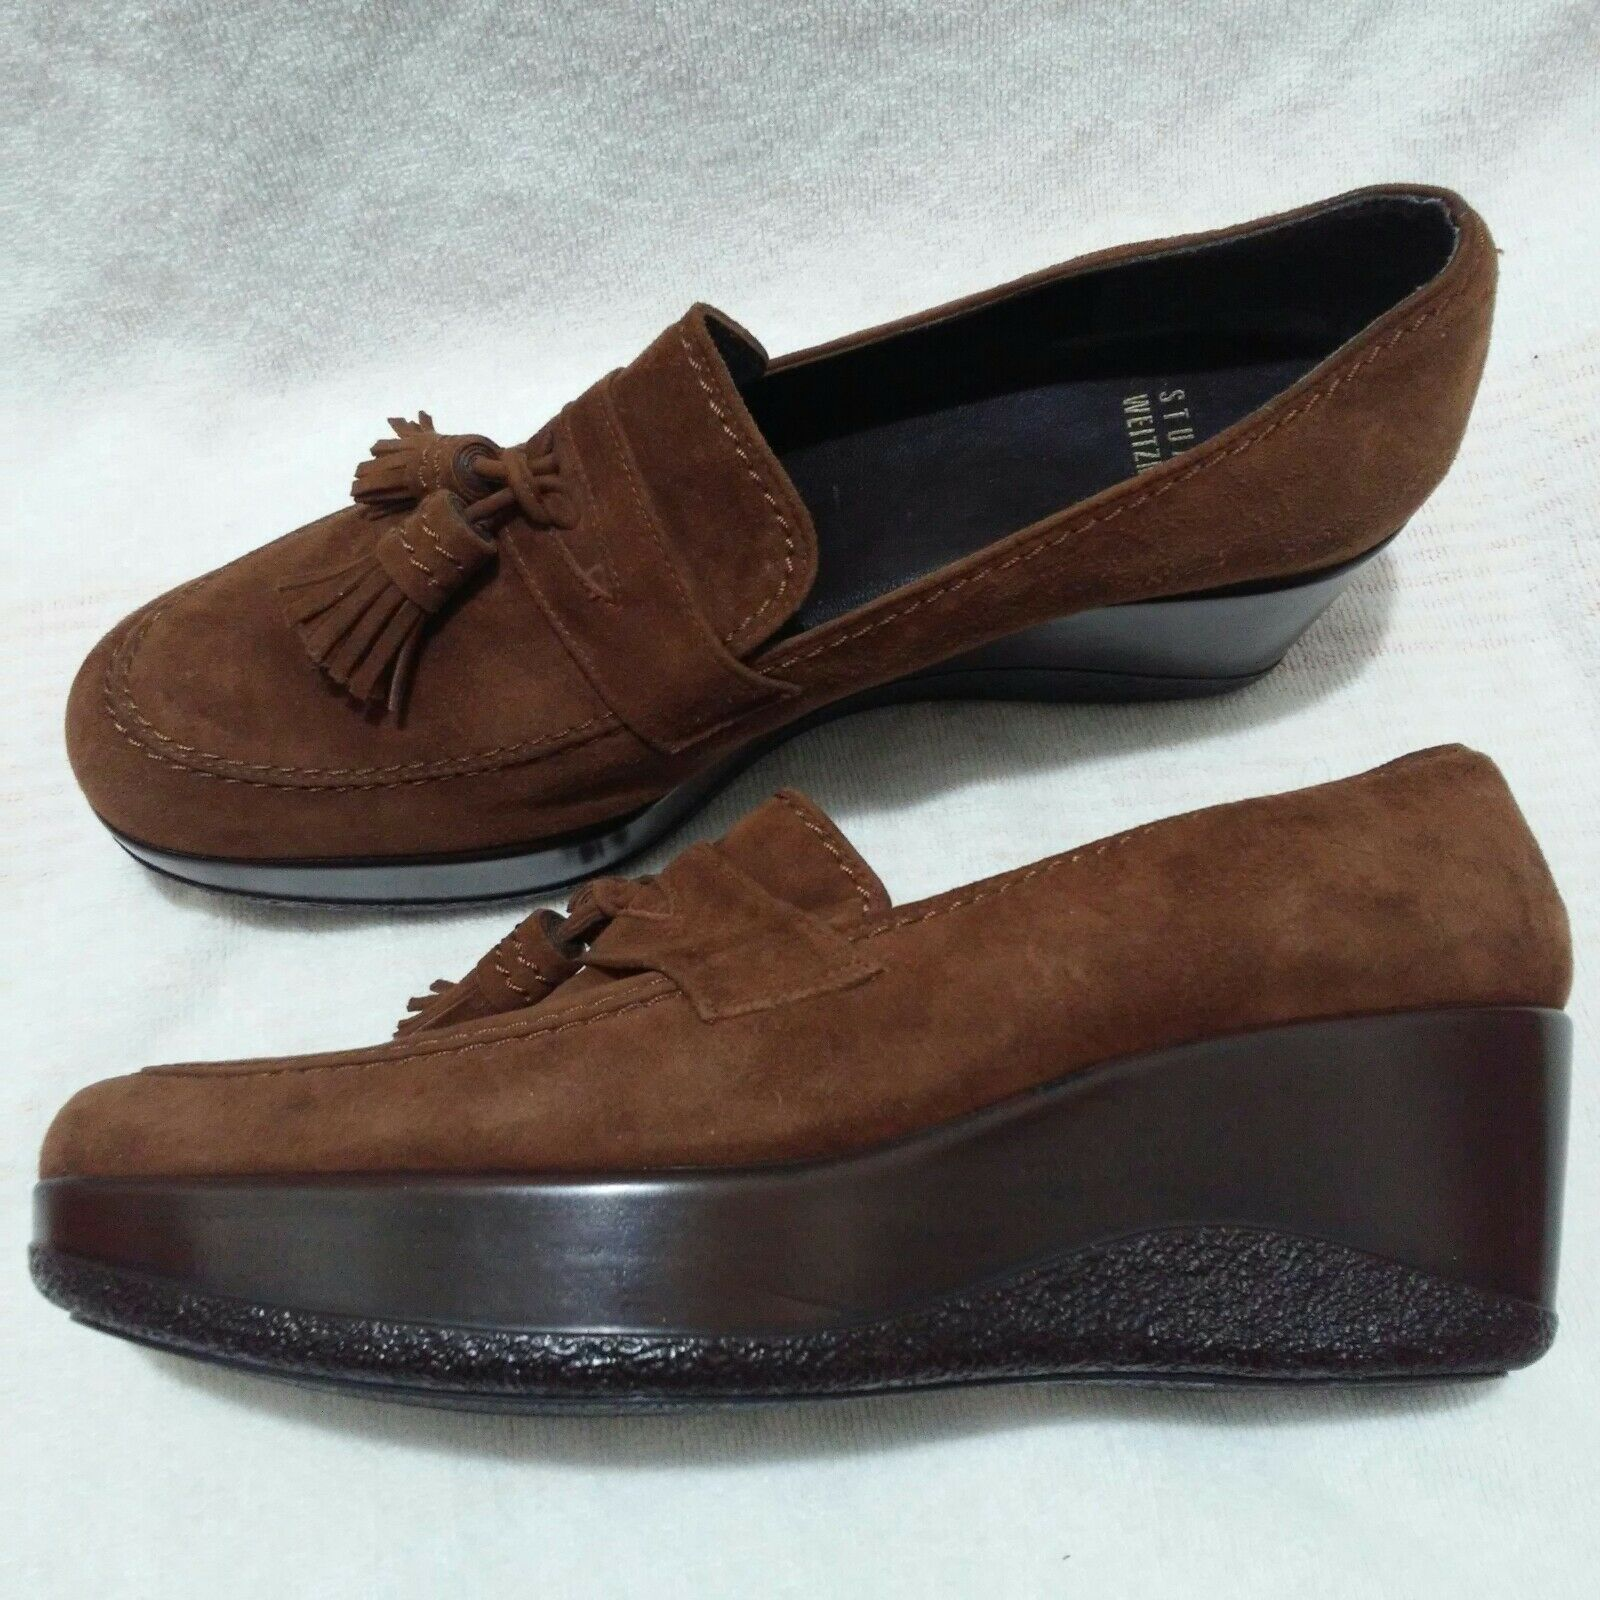 STUART WEITZMAN Wedge Suede Leather Platform Wedge WEITZMAN Heels Slip-on Loafers $425 Brown 8M b4fc13